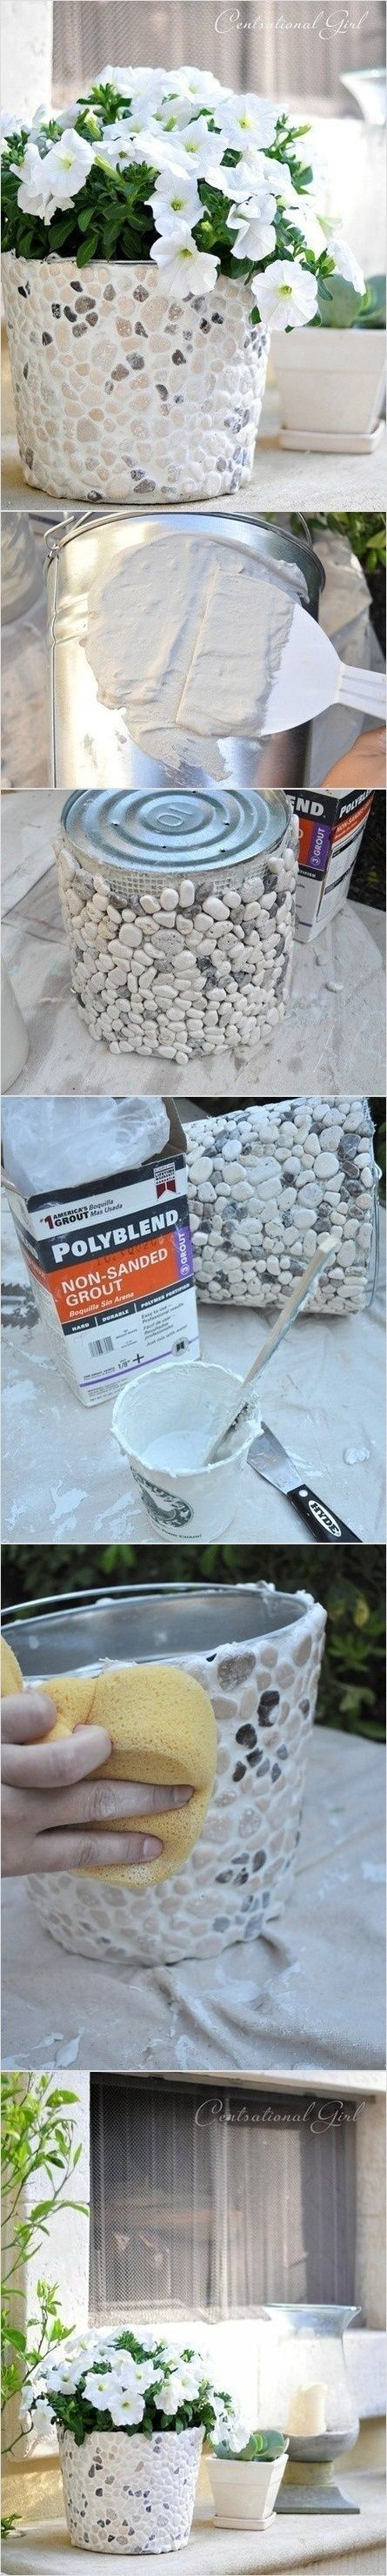 Alternative Gardning: DIY rock covered bucket